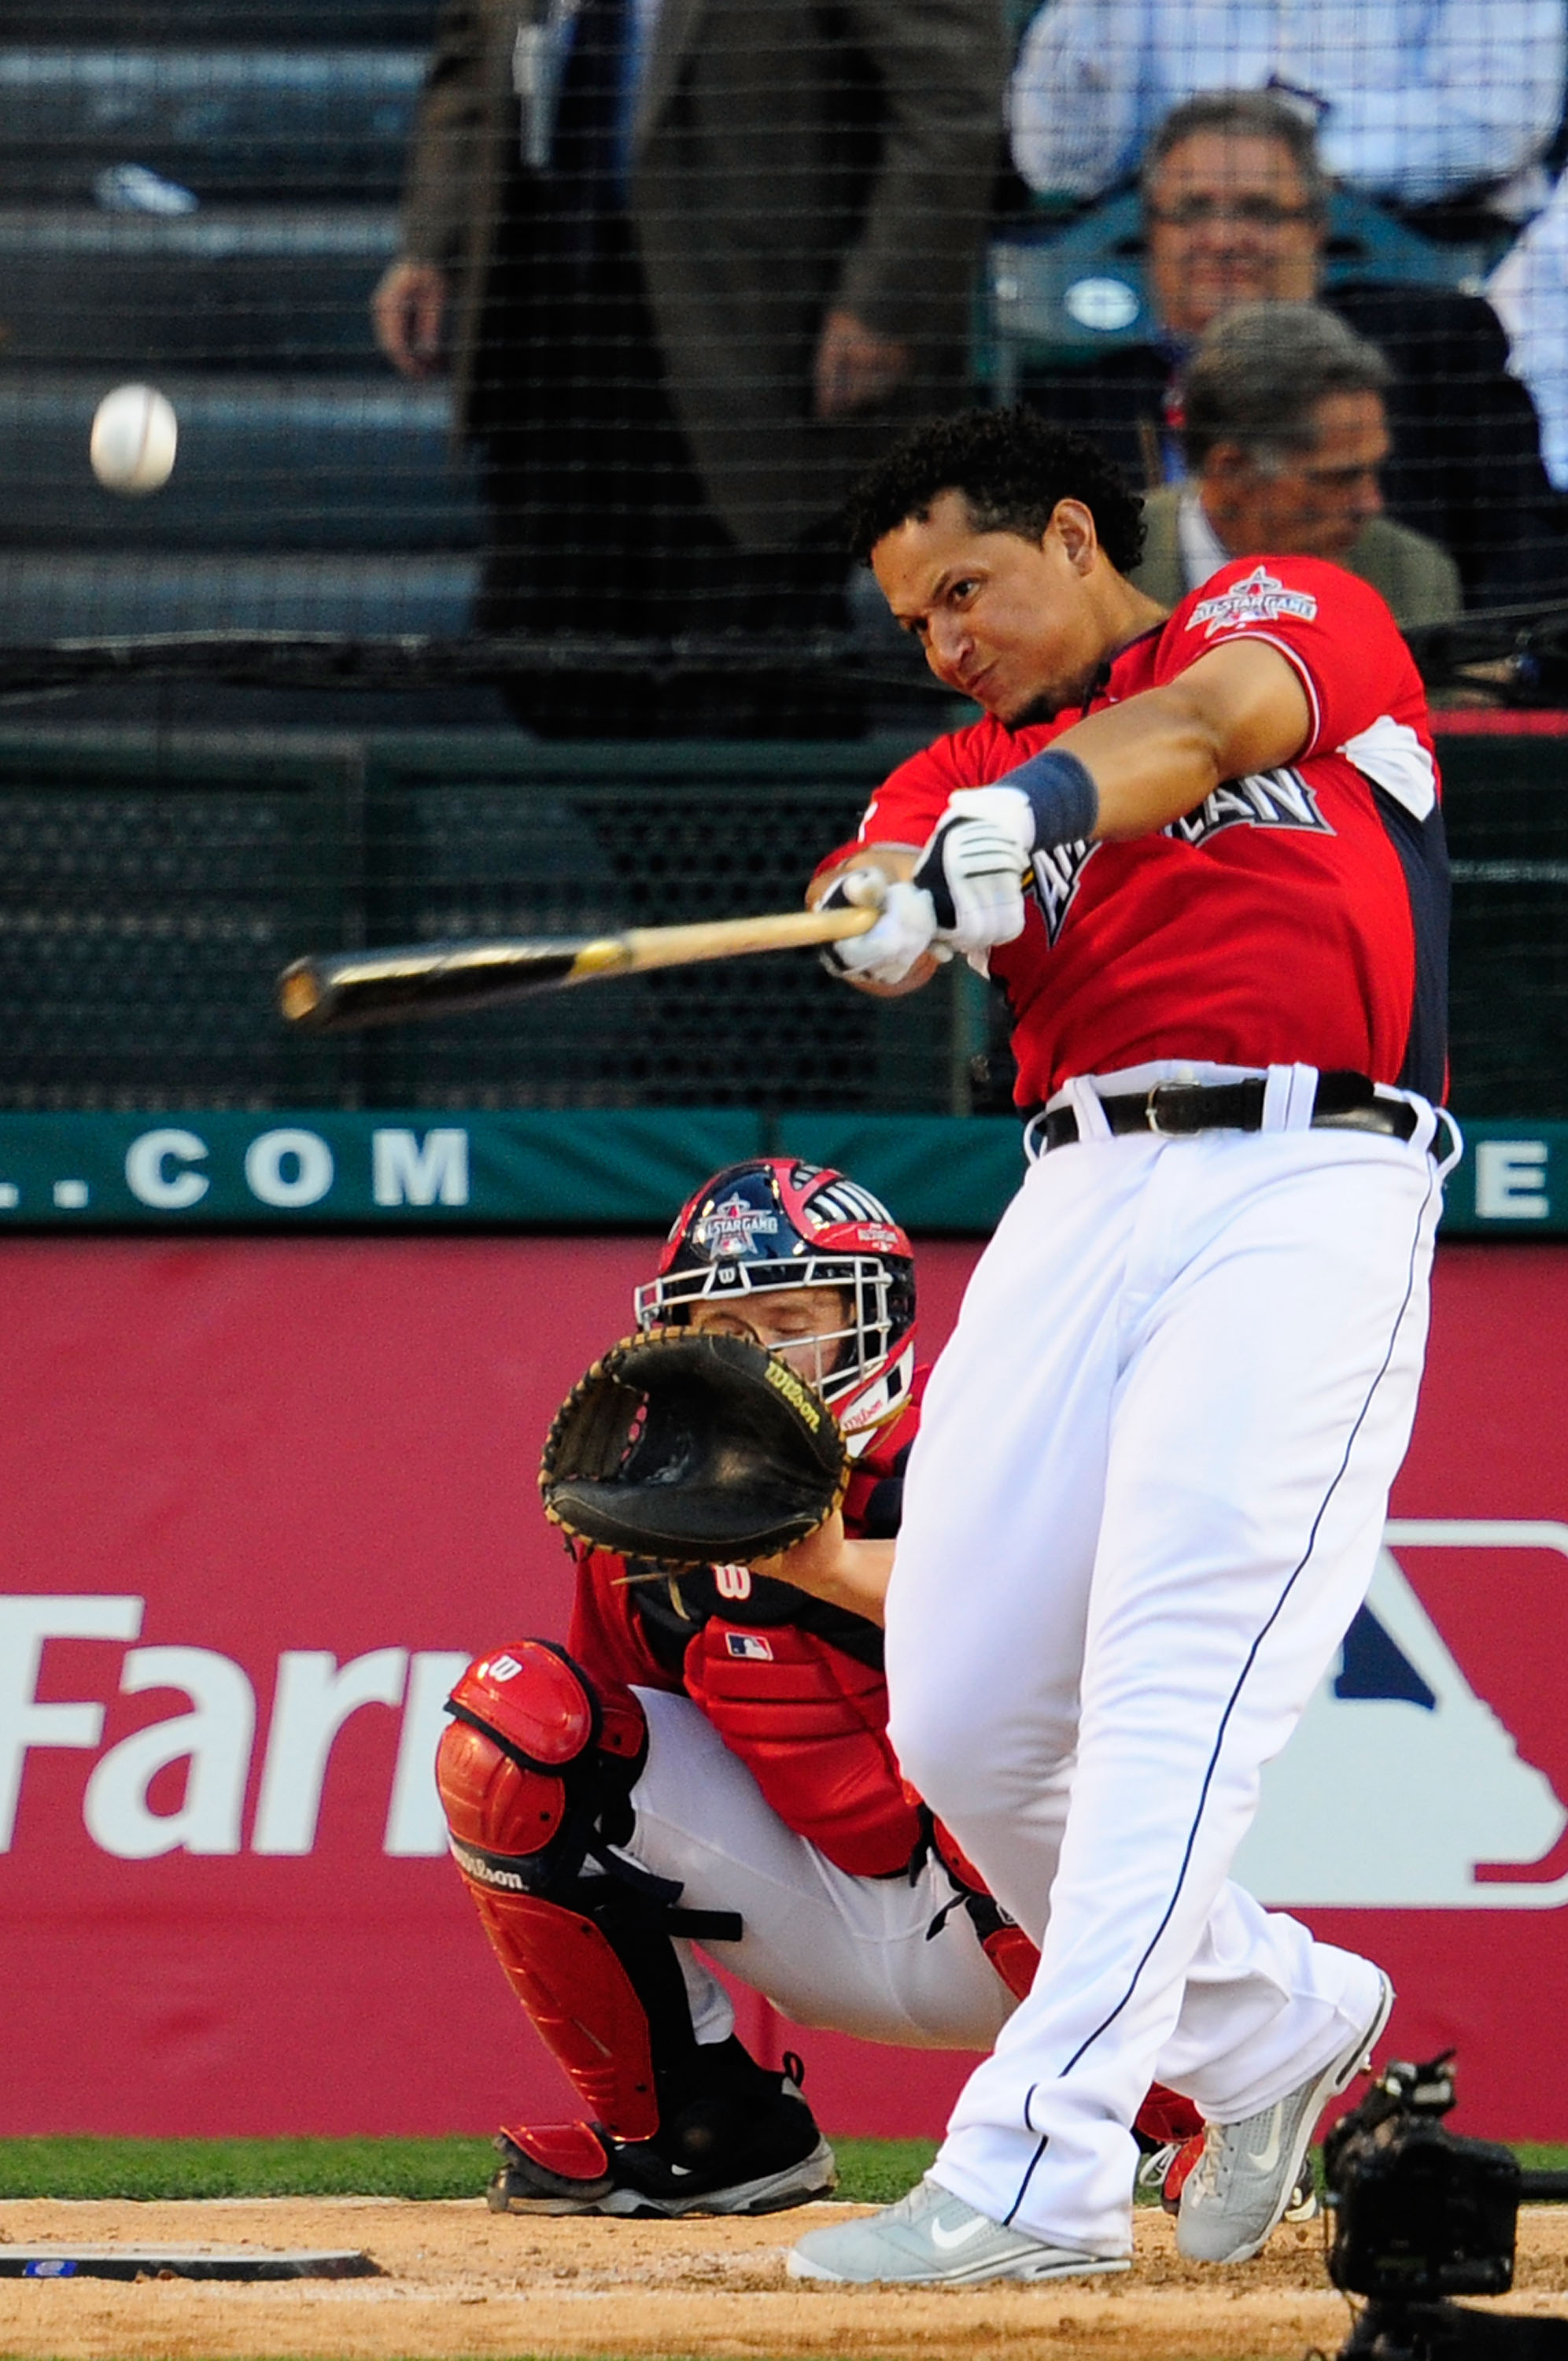 ANAHEIM, CA - JULY 12:  American League All-Star Miguel Cabrera #24 of the Detroit Tigers swings the bat during the second round of the 2010 State Farm Home Run Derby during All-Star Weekend at Angel Stadium of Anaheim on July 12, 2010 in Anaheim, Califor